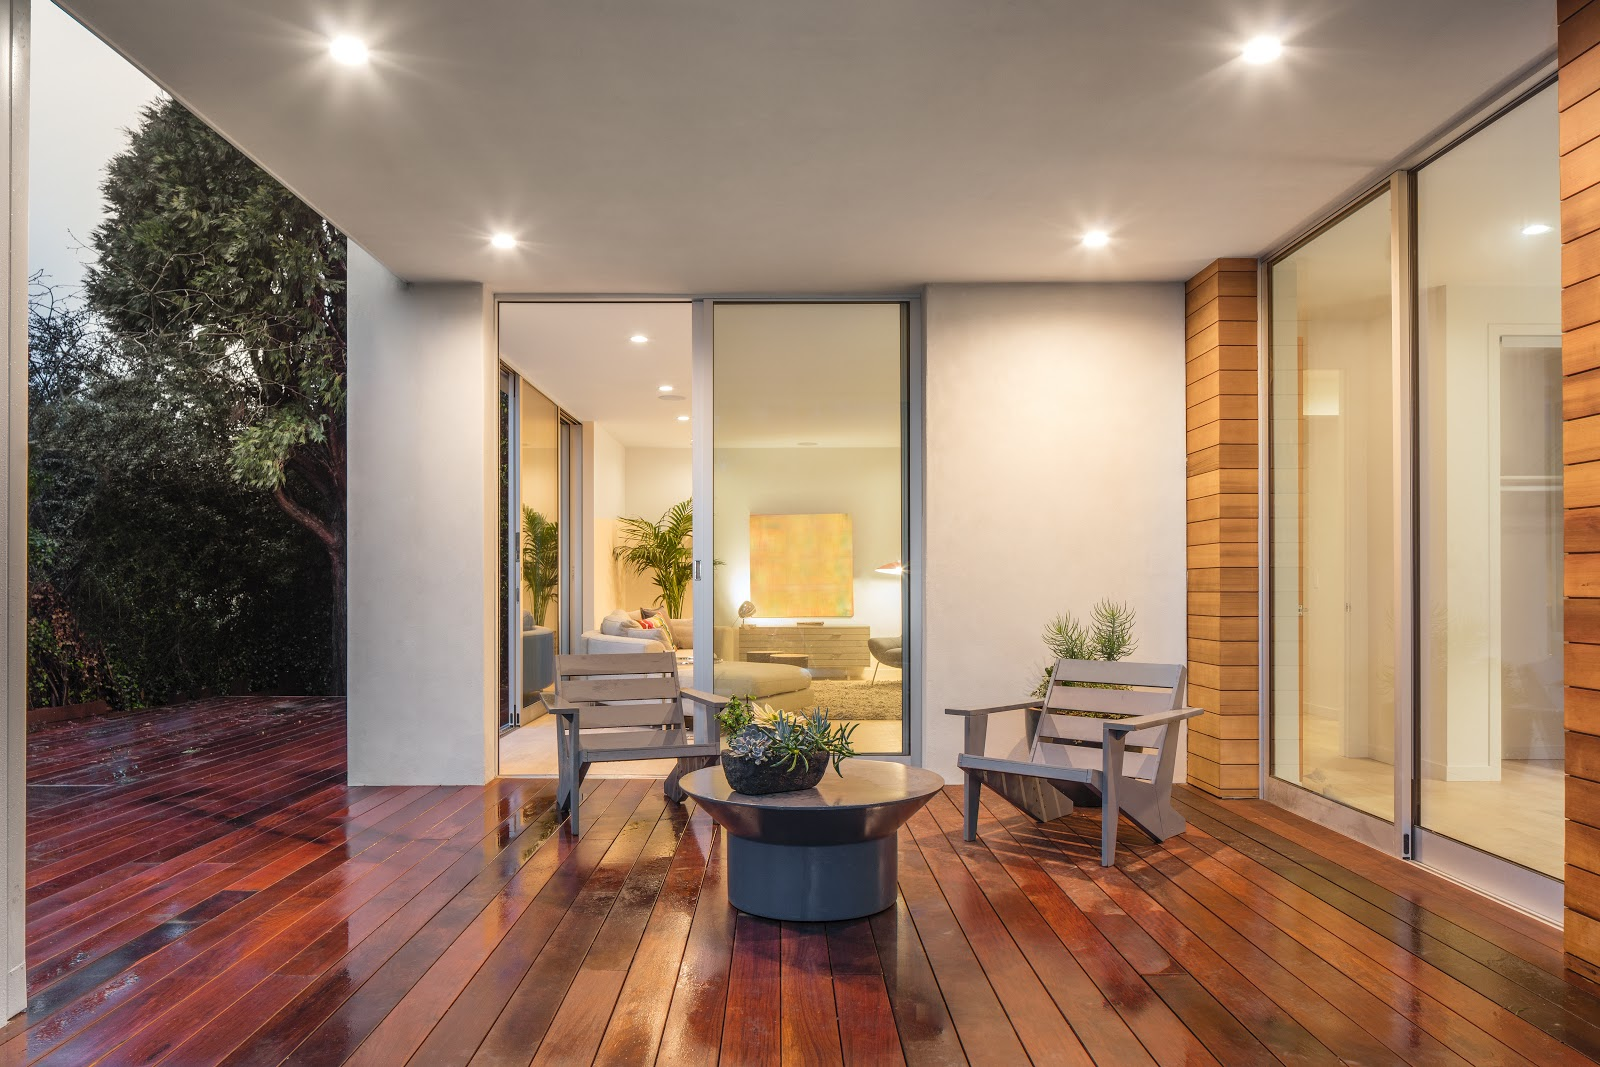 A pair of sliding patio doors leading to a patio